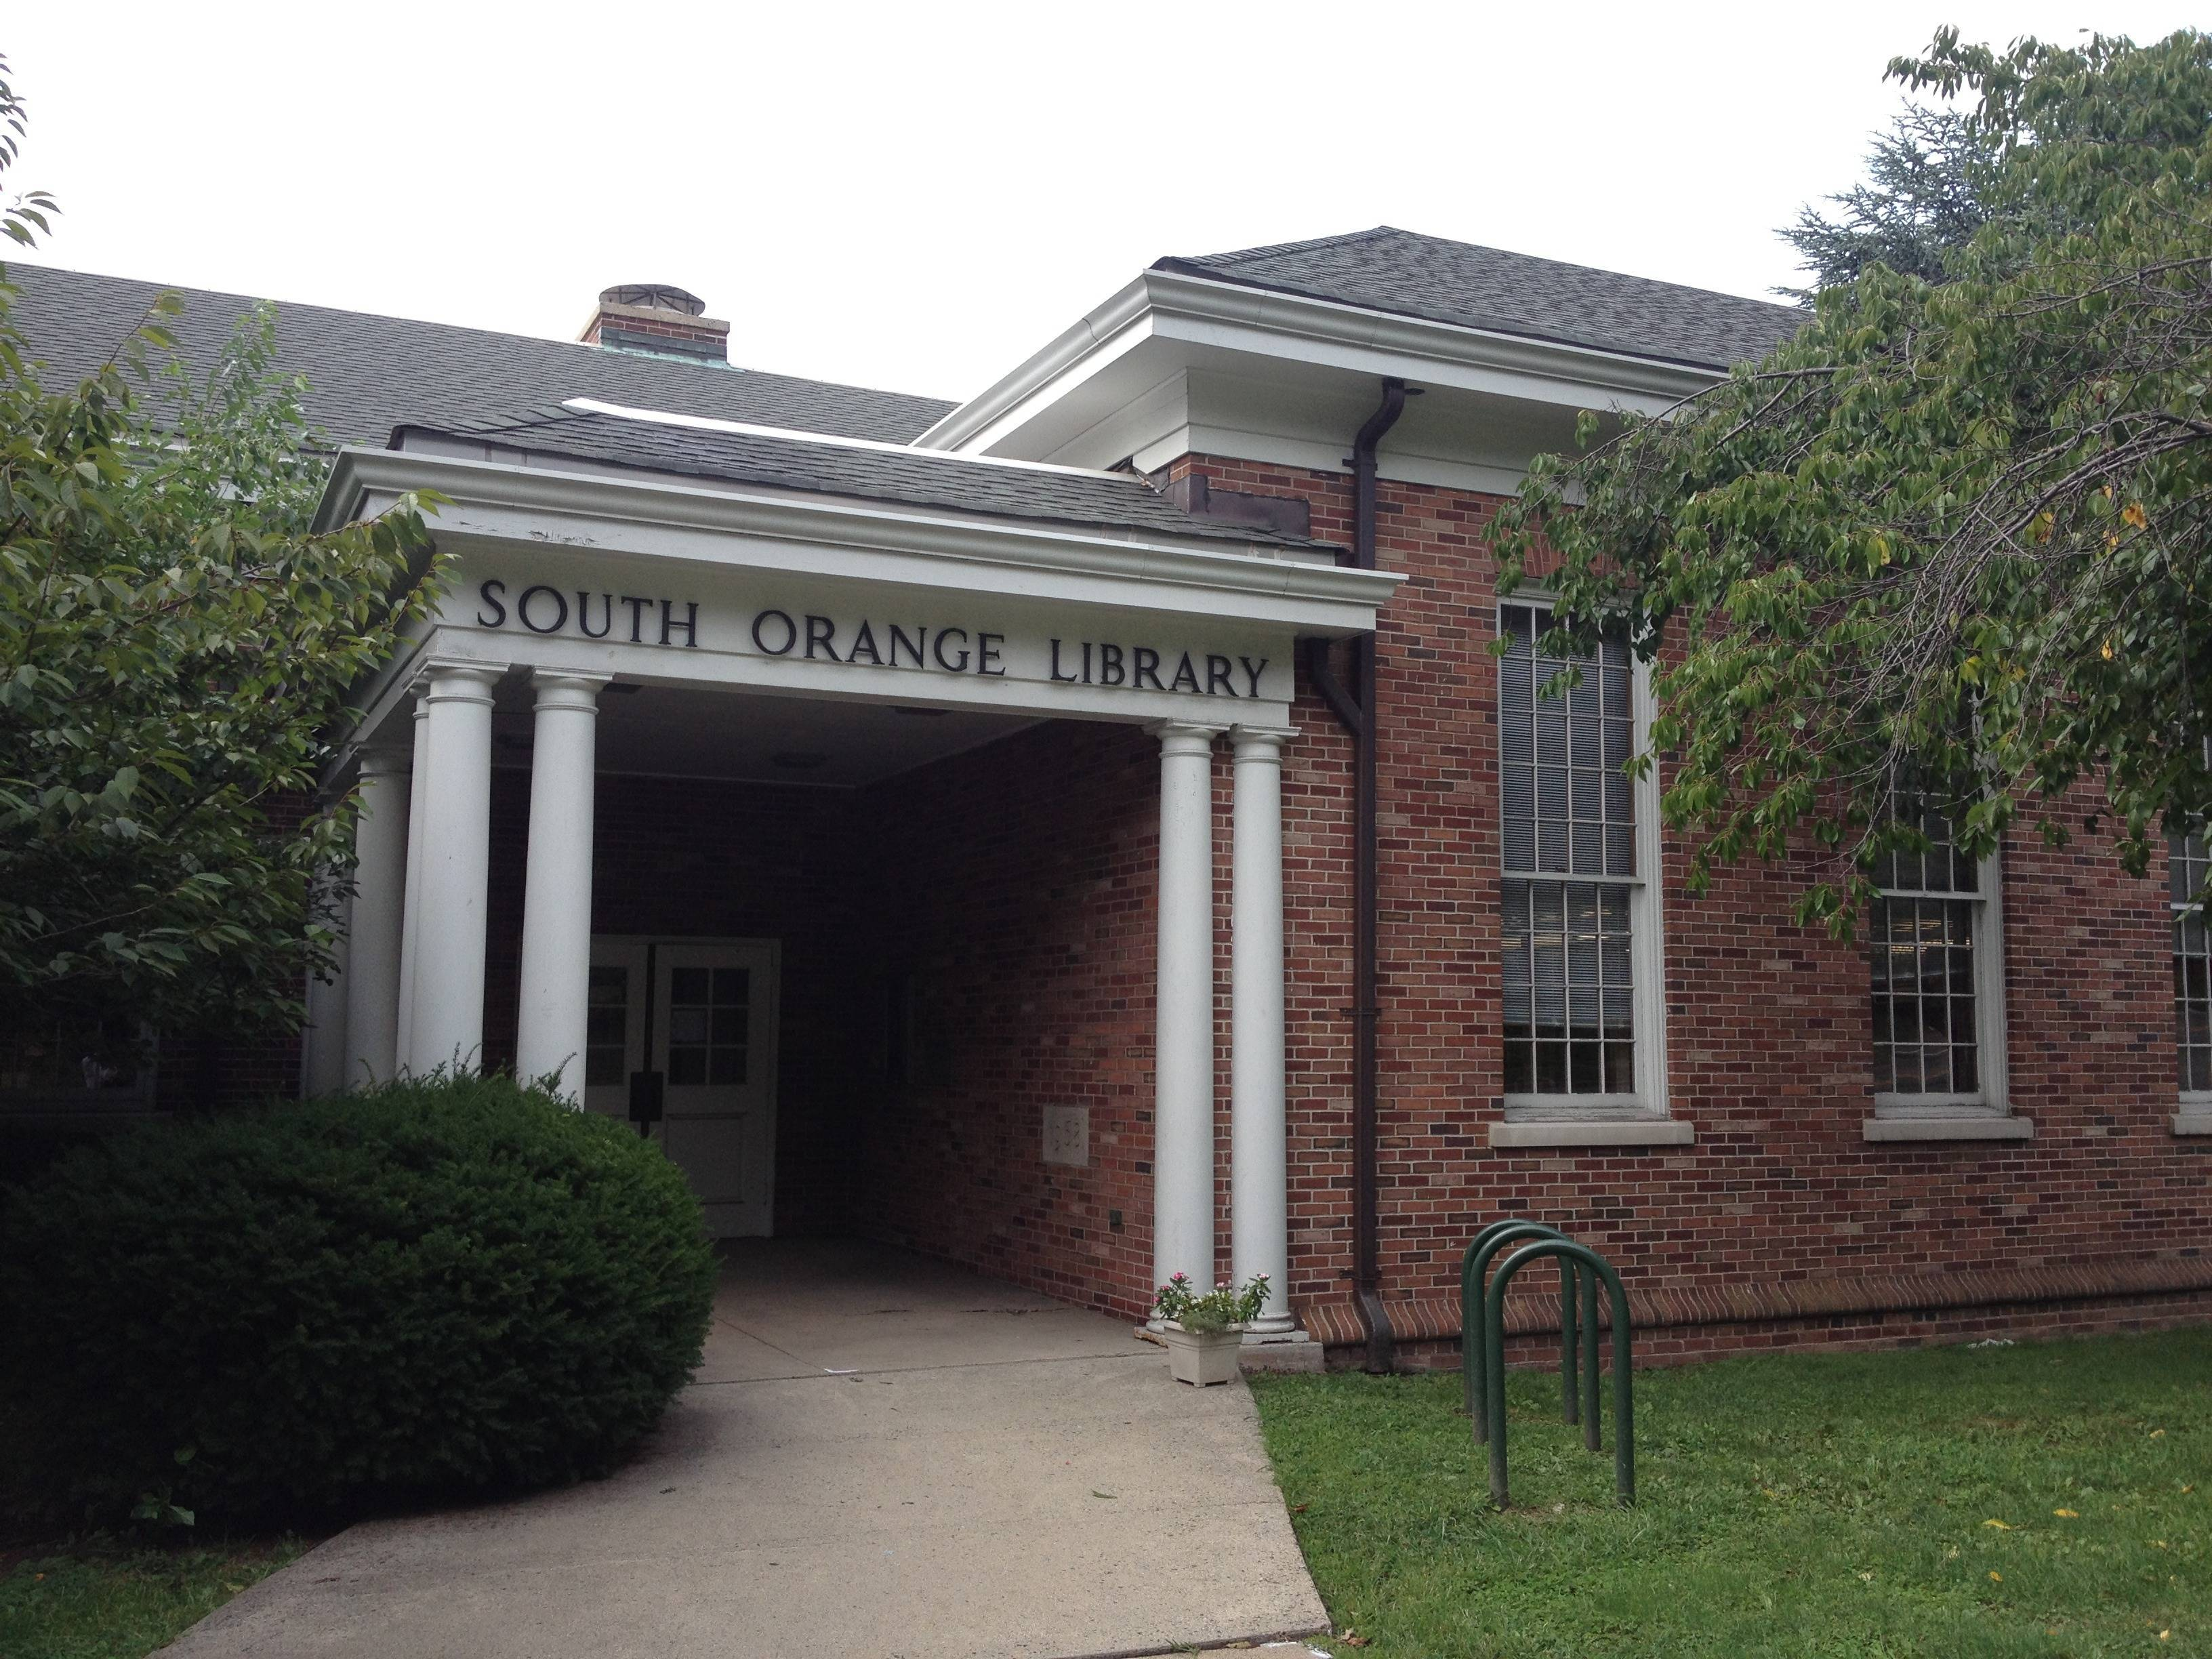 d302d3caff2300b9cf1f_South_Orange_Library.JPG